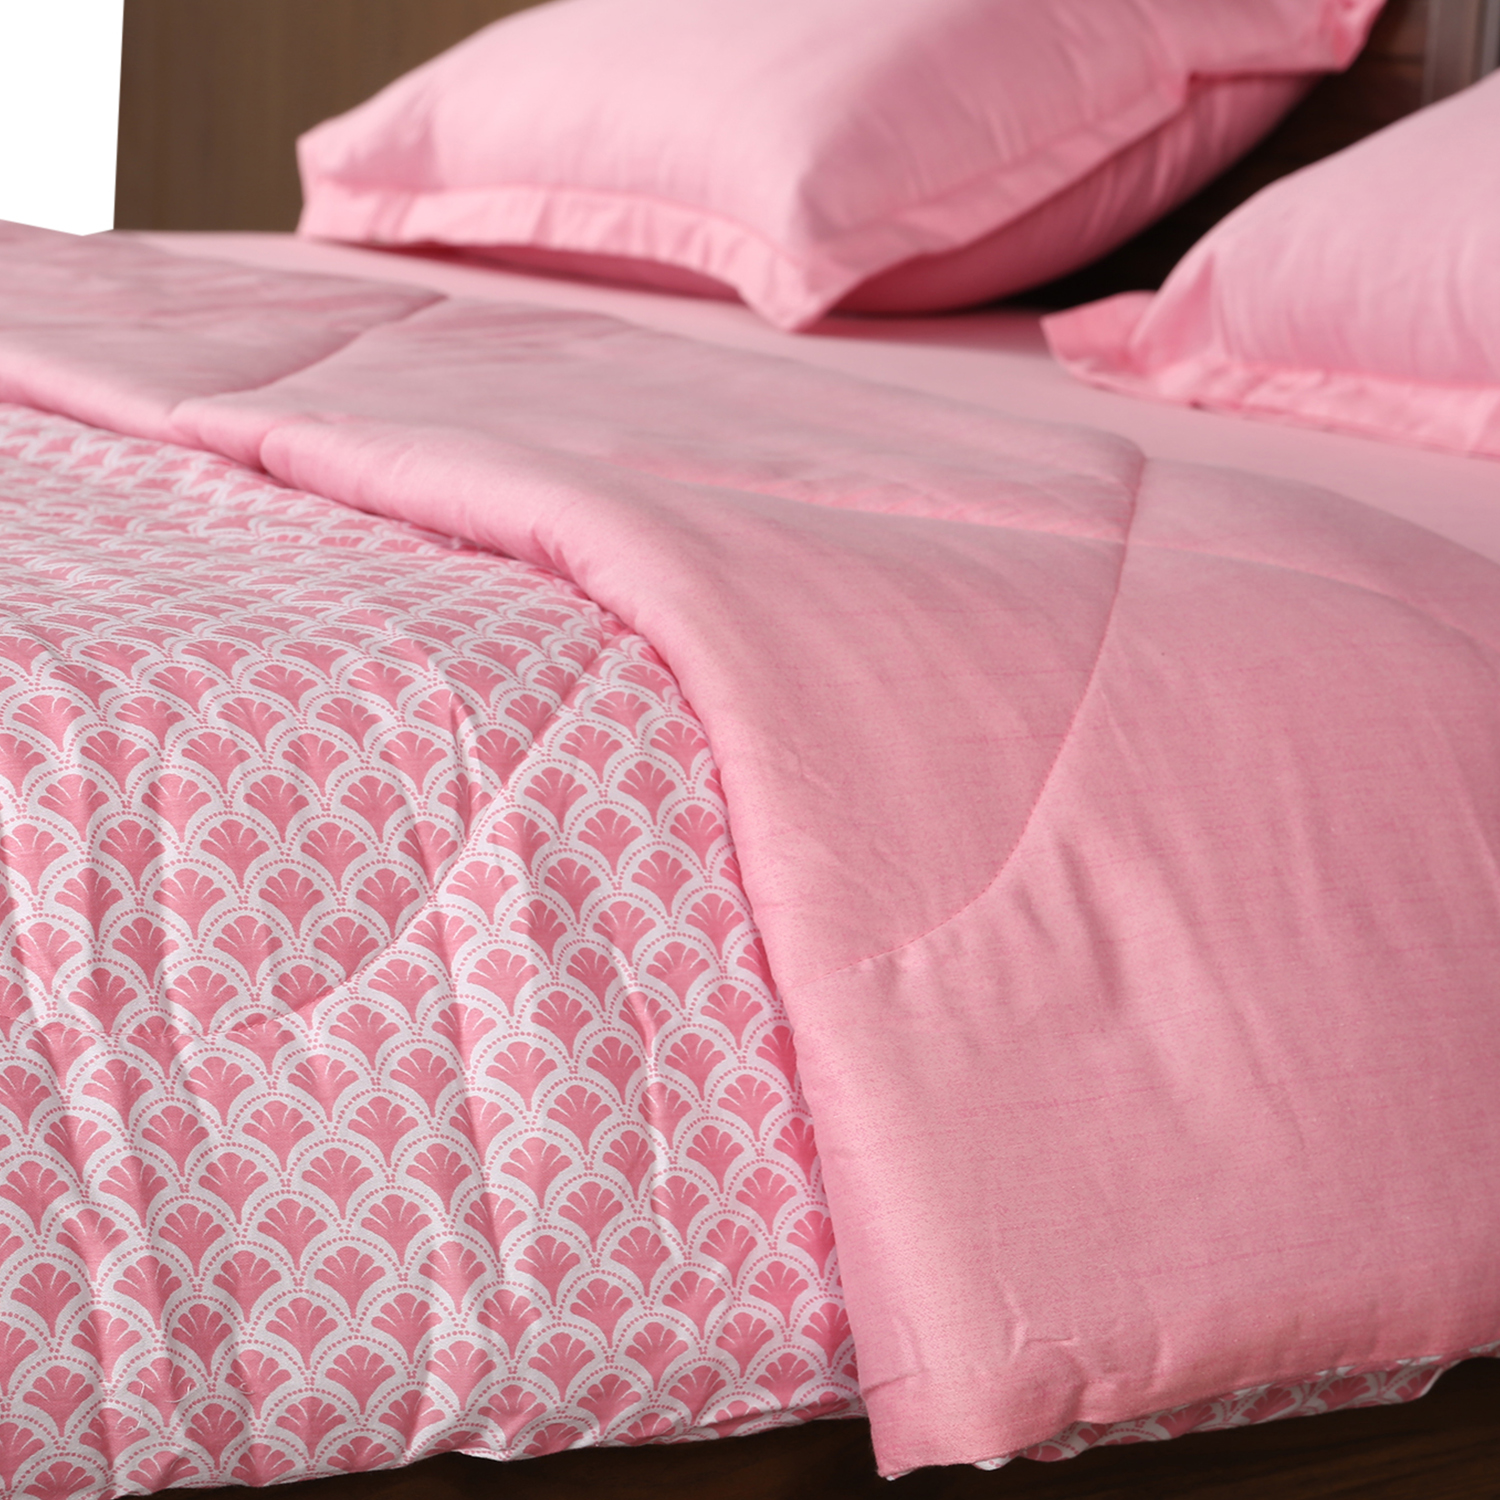 Amour Double Comforter Rose Cotton Comforters in Rose Colour by Living Essence